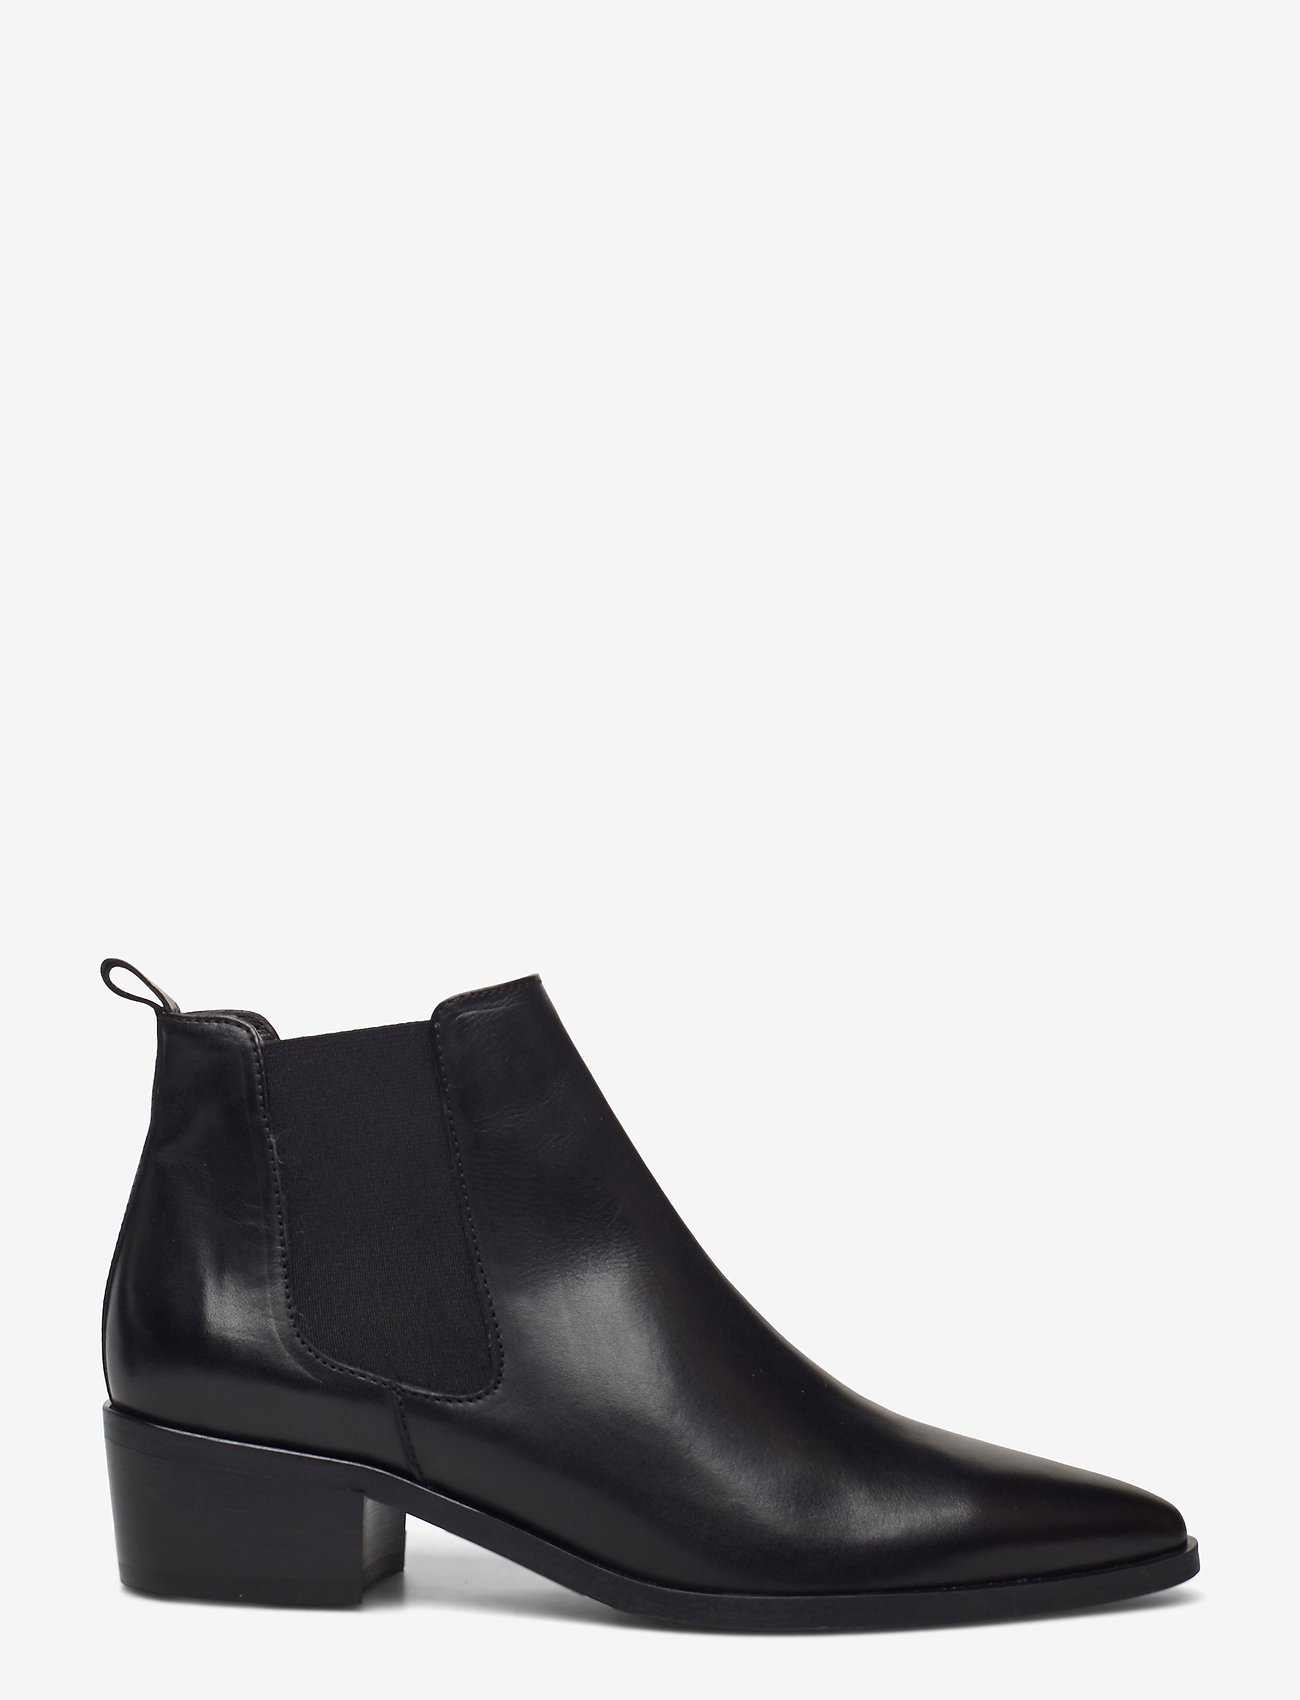 Billi Bi - Booties 93700 - chelsea boots - black calf 80 - 1